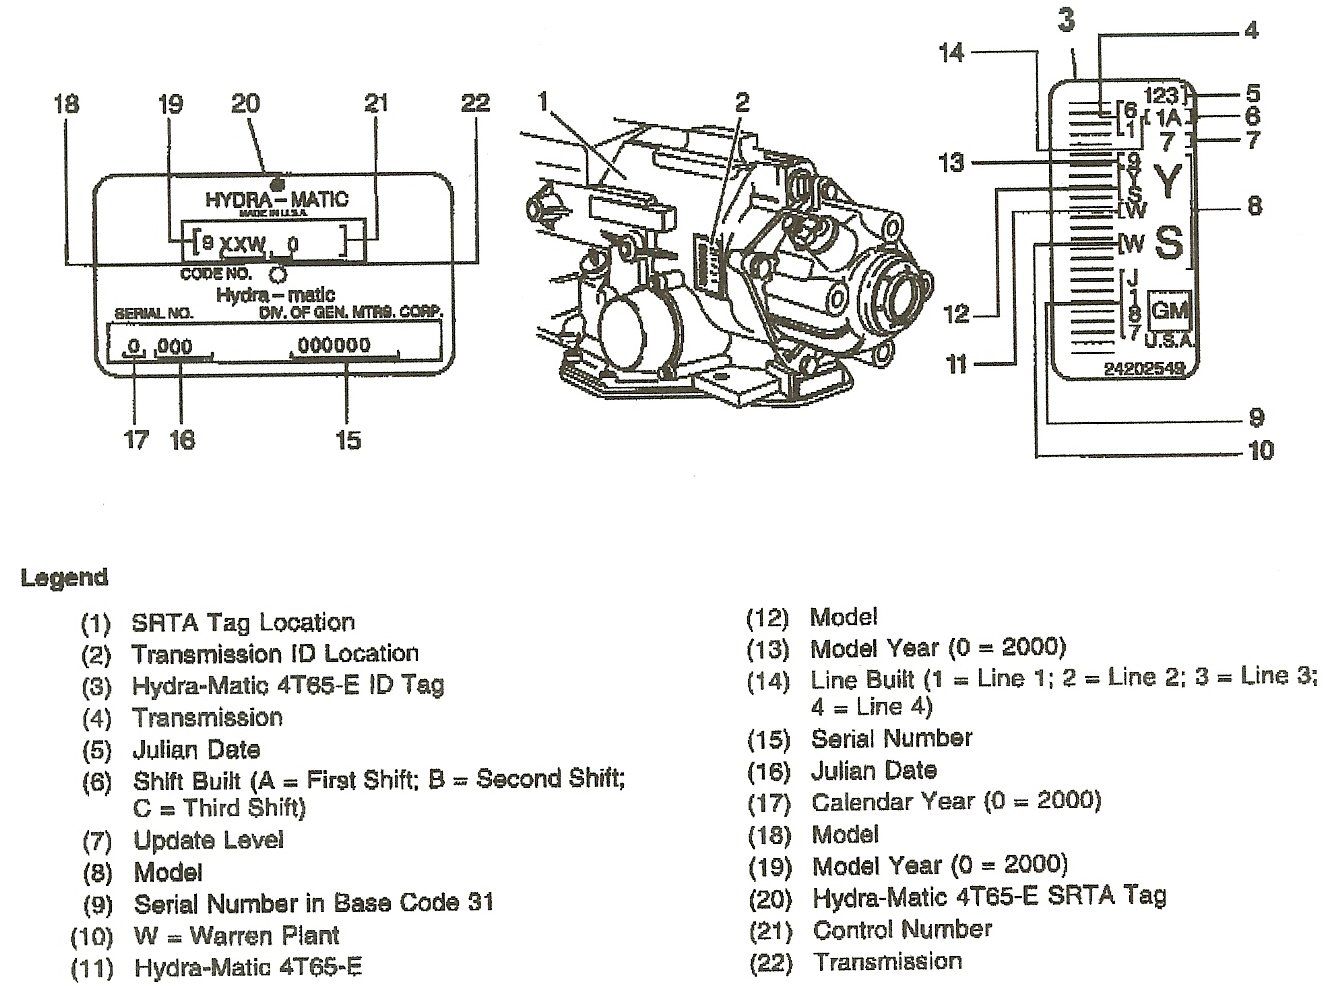 2000 Impala Engine Diagram Great Design Of Wiring Chevy Free Picture Buick 3800 Motor Mounts Image 34